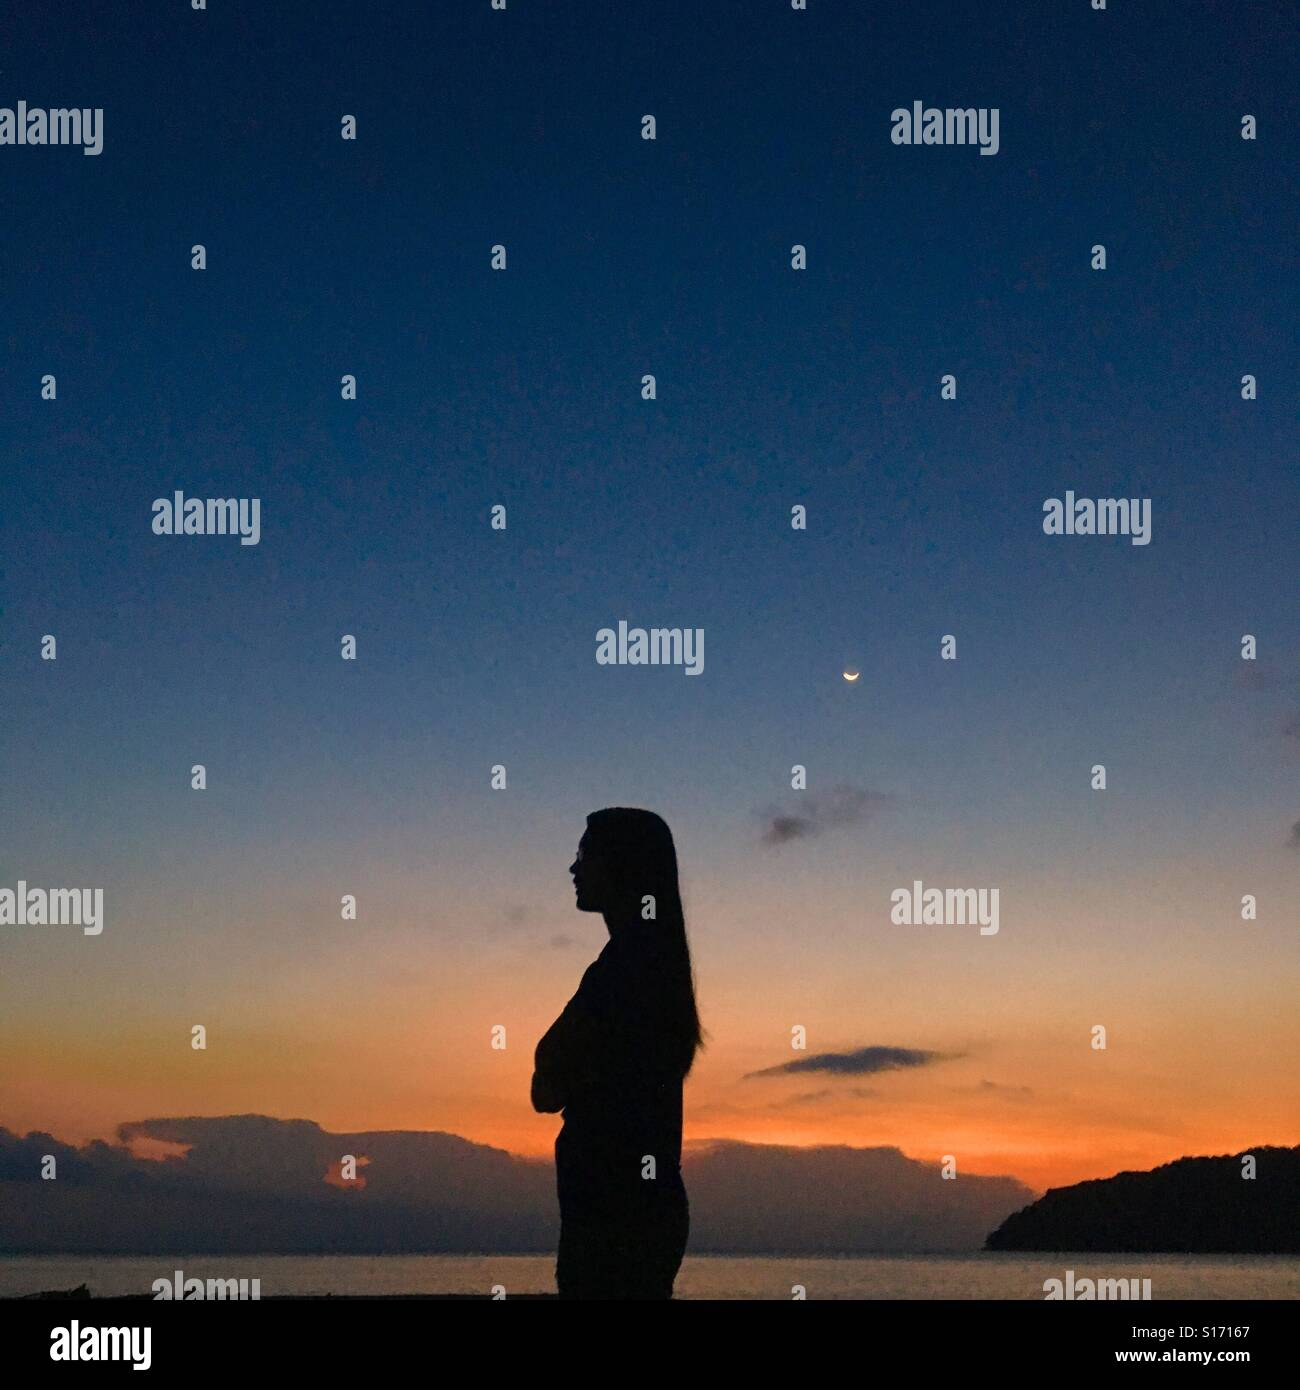 Silhouette of the sunset - Stock Image